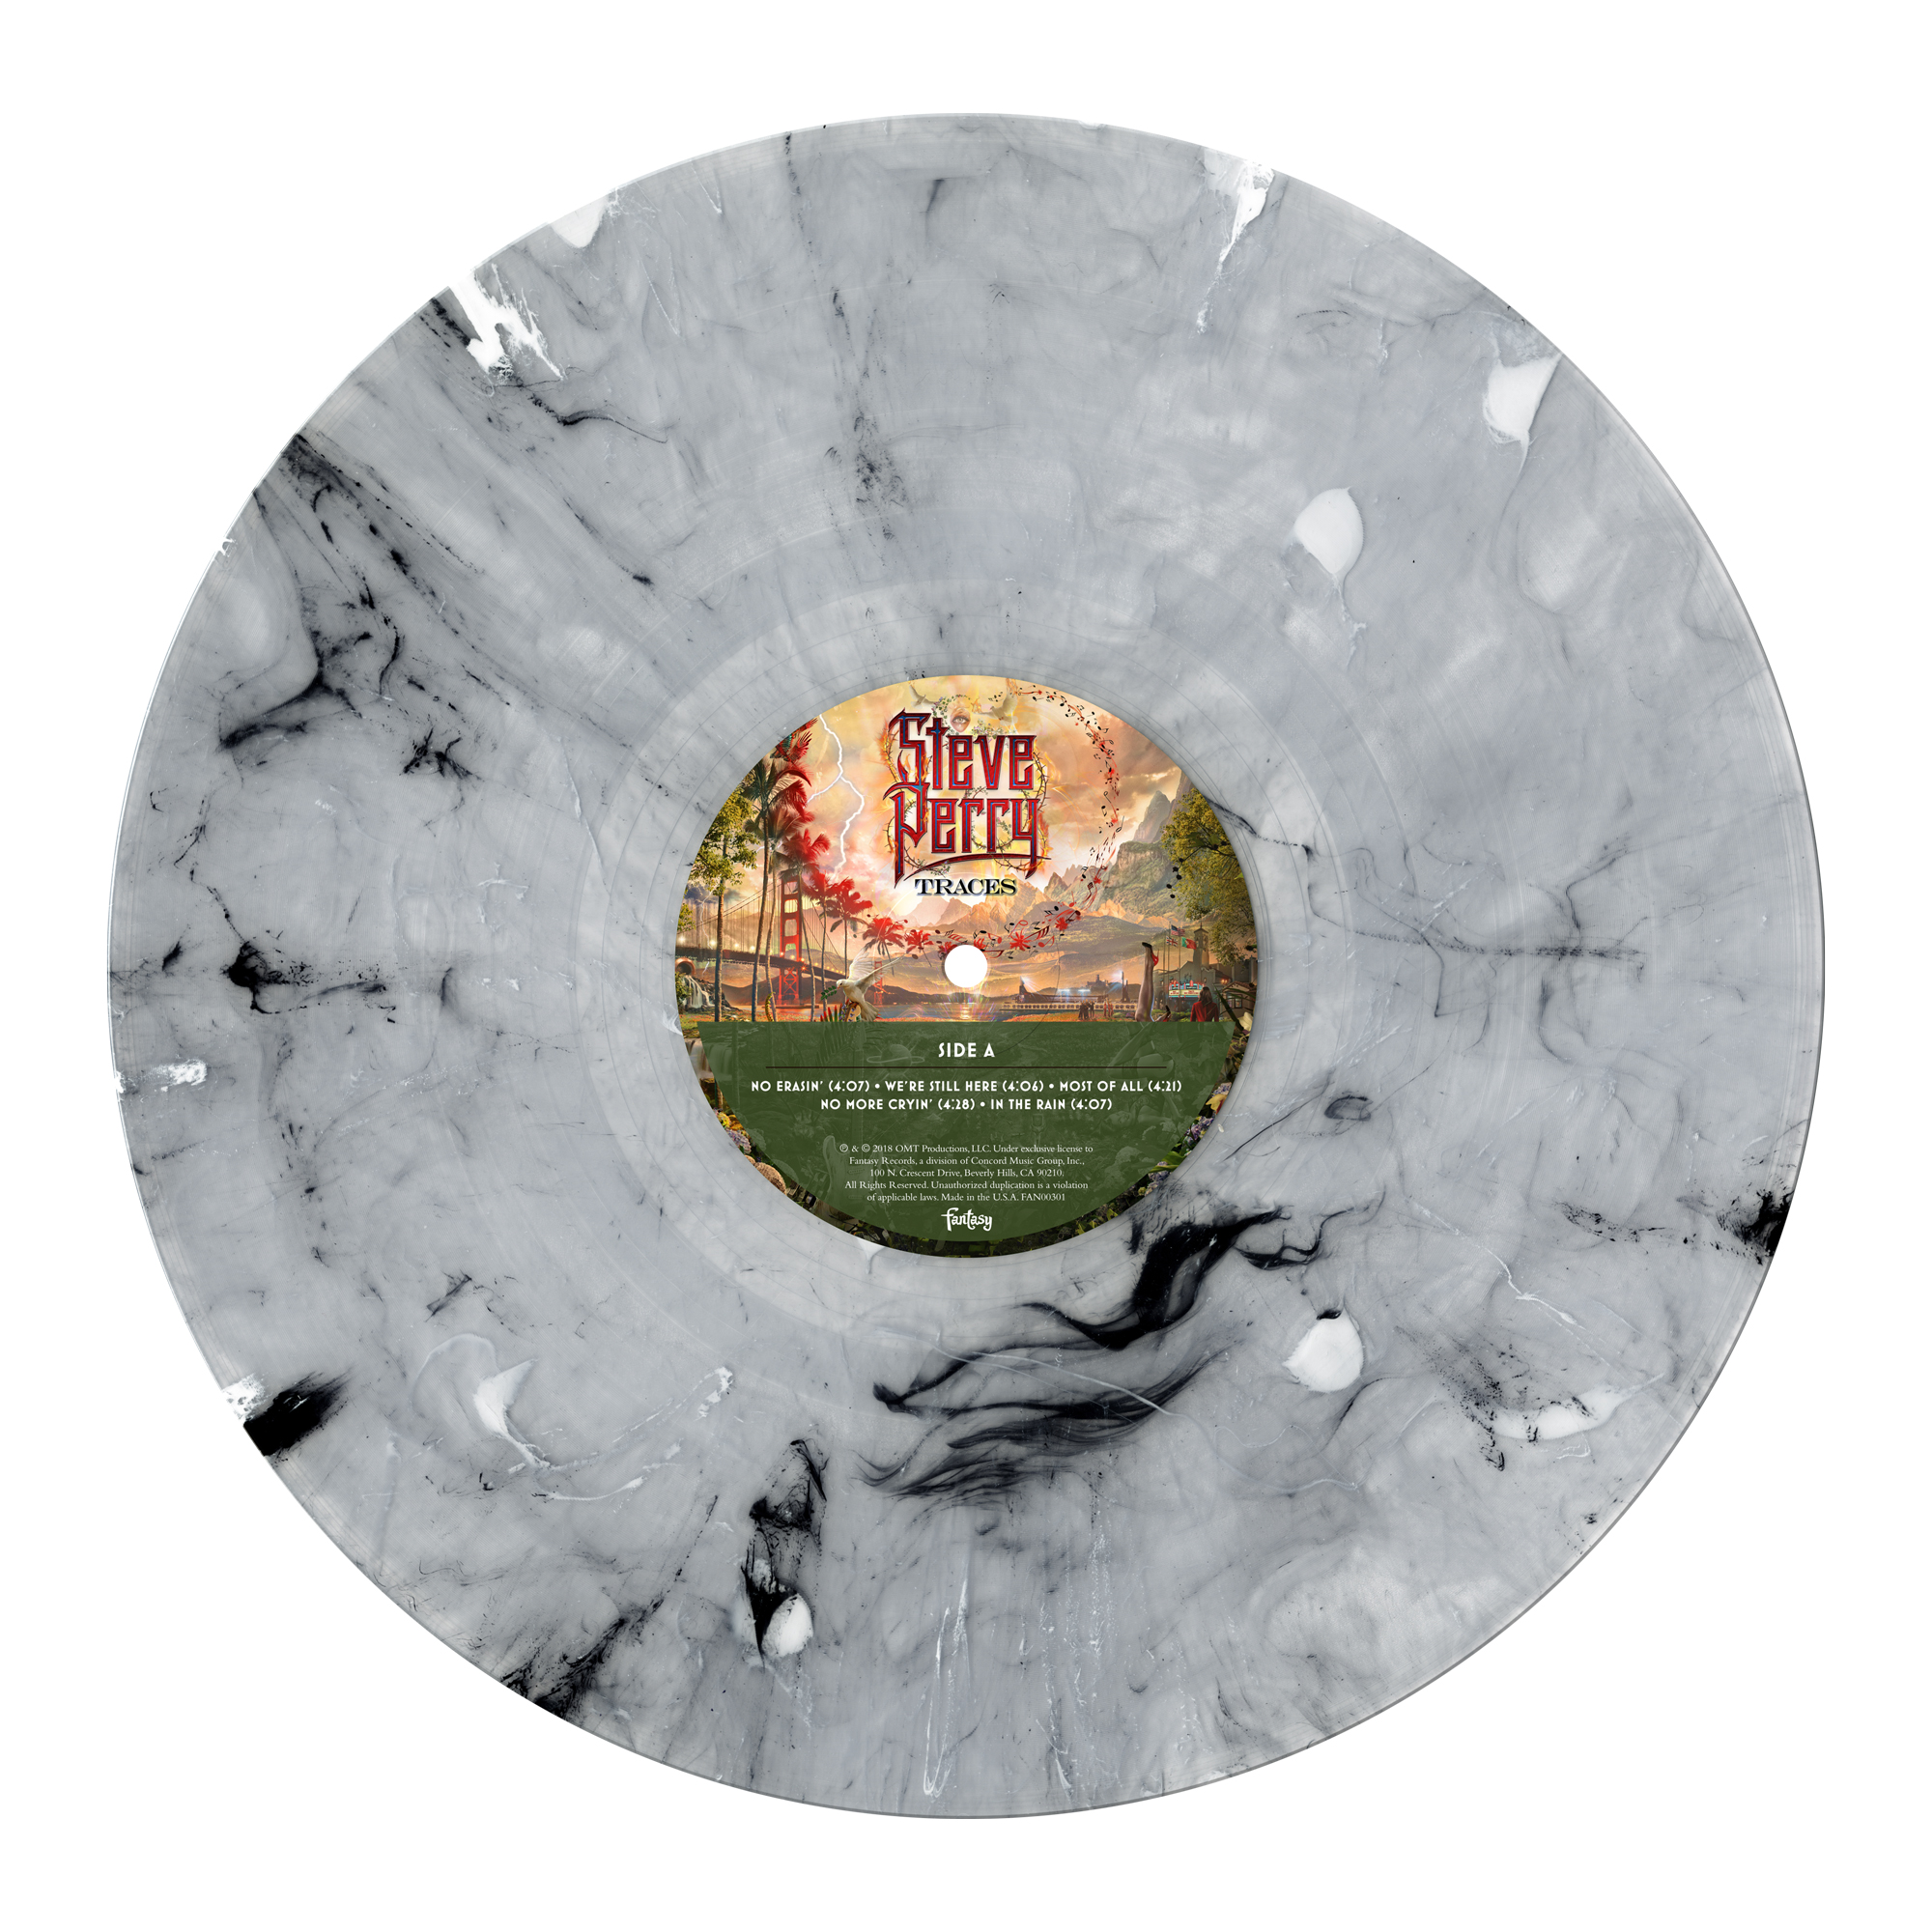 Signed 15-Track White Marble 2xLP Vinyl or Signed 15-Track Deluxe CD Bundle (limited edition of 50 each)